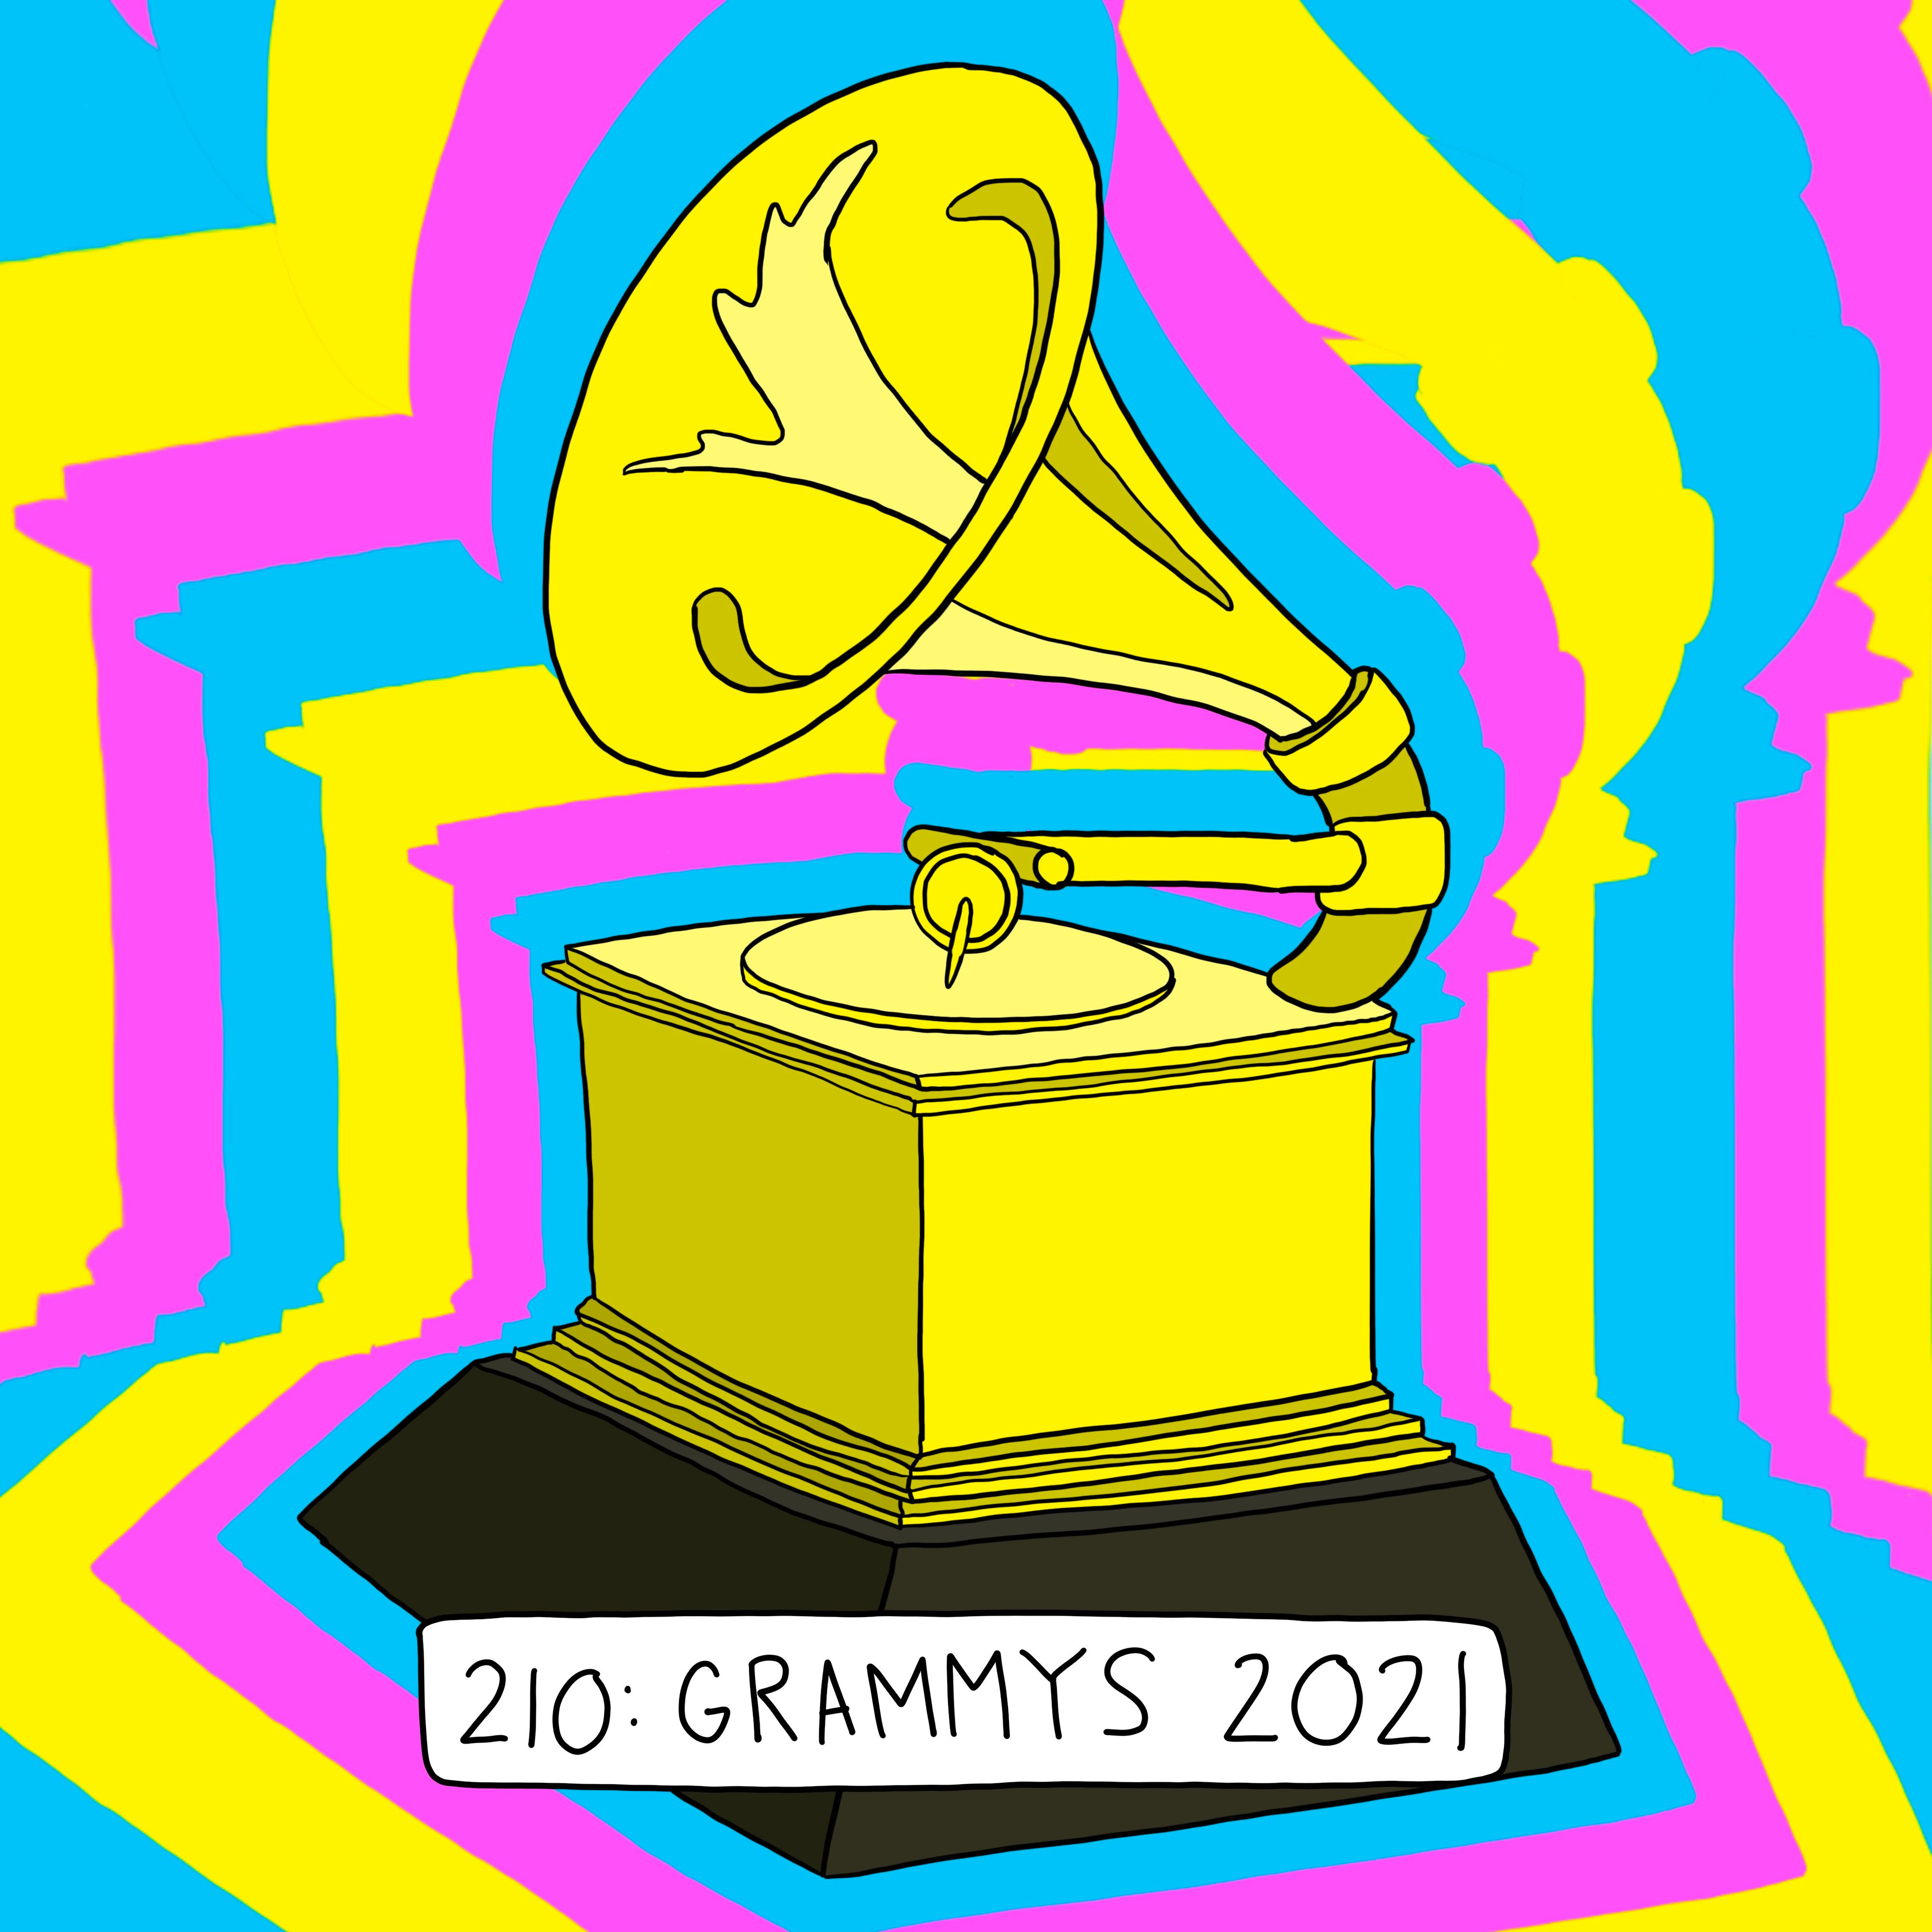 What the 63rd Grammys say about the state of pop